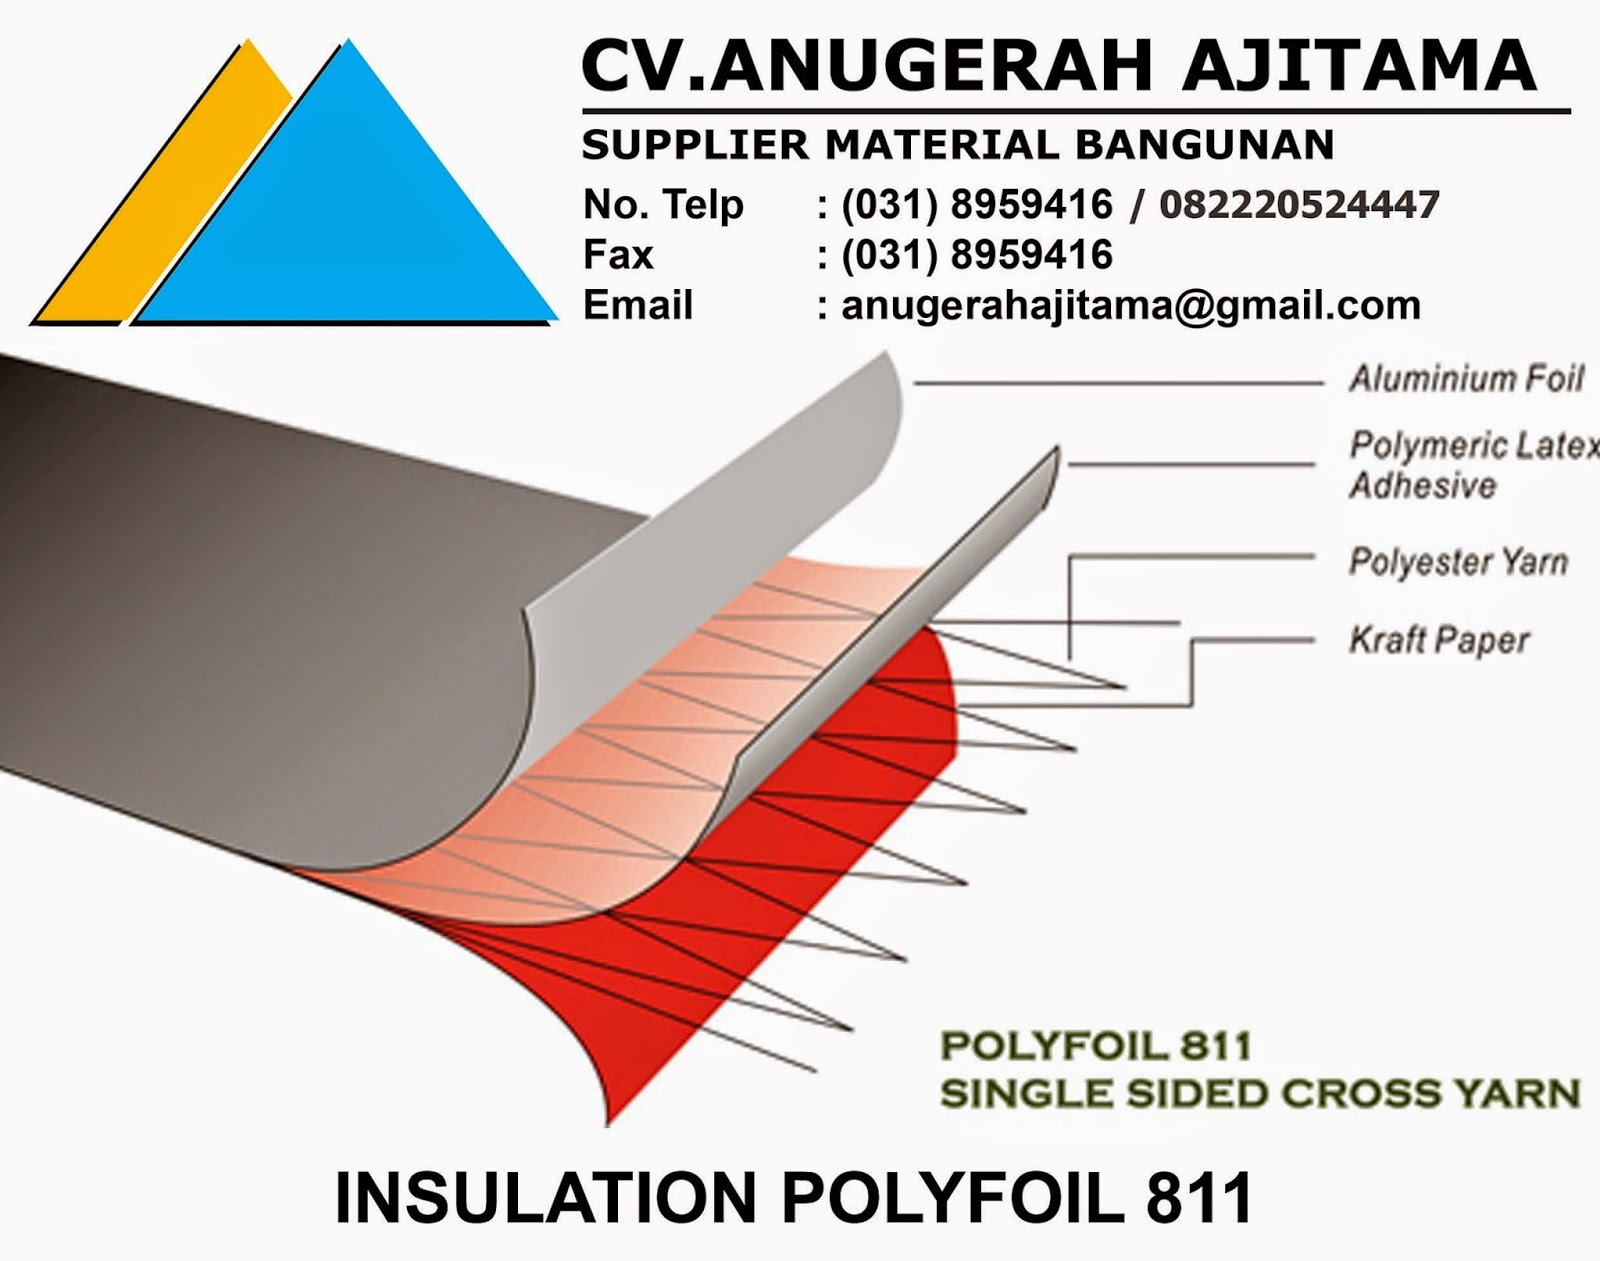 INSULATION POLYFOIL 811